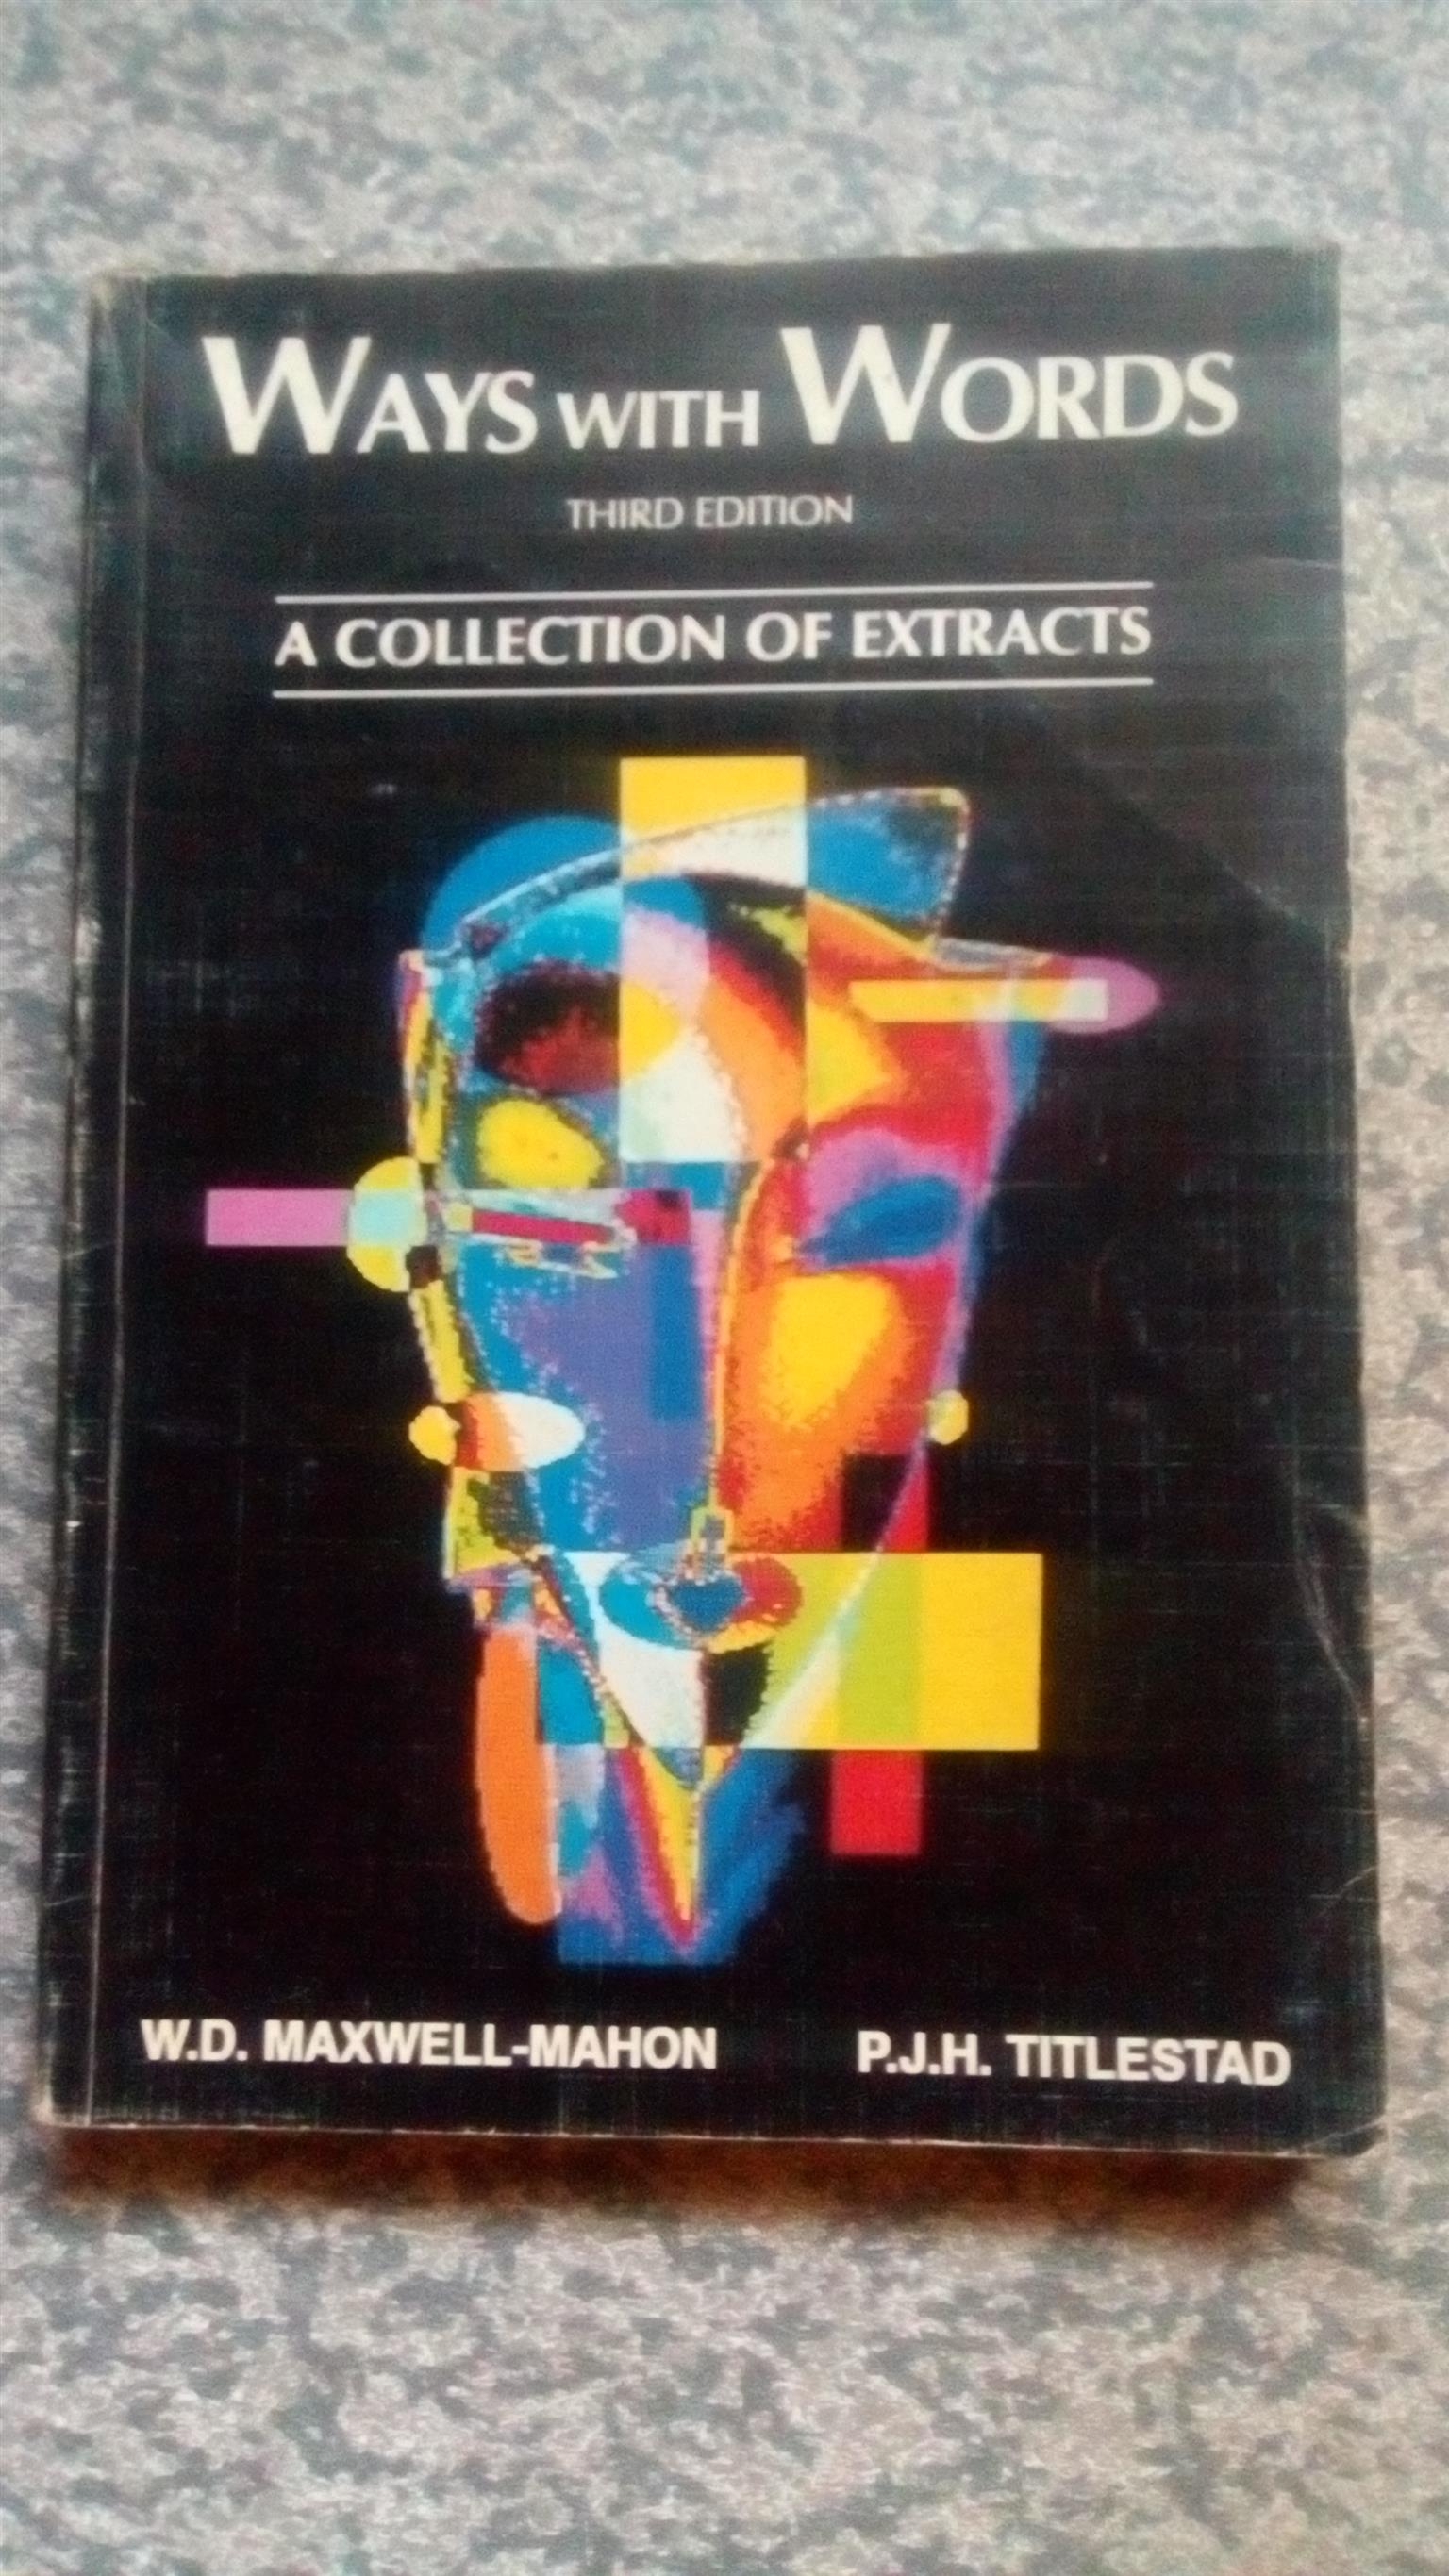 Ways with words : a collection of extracts